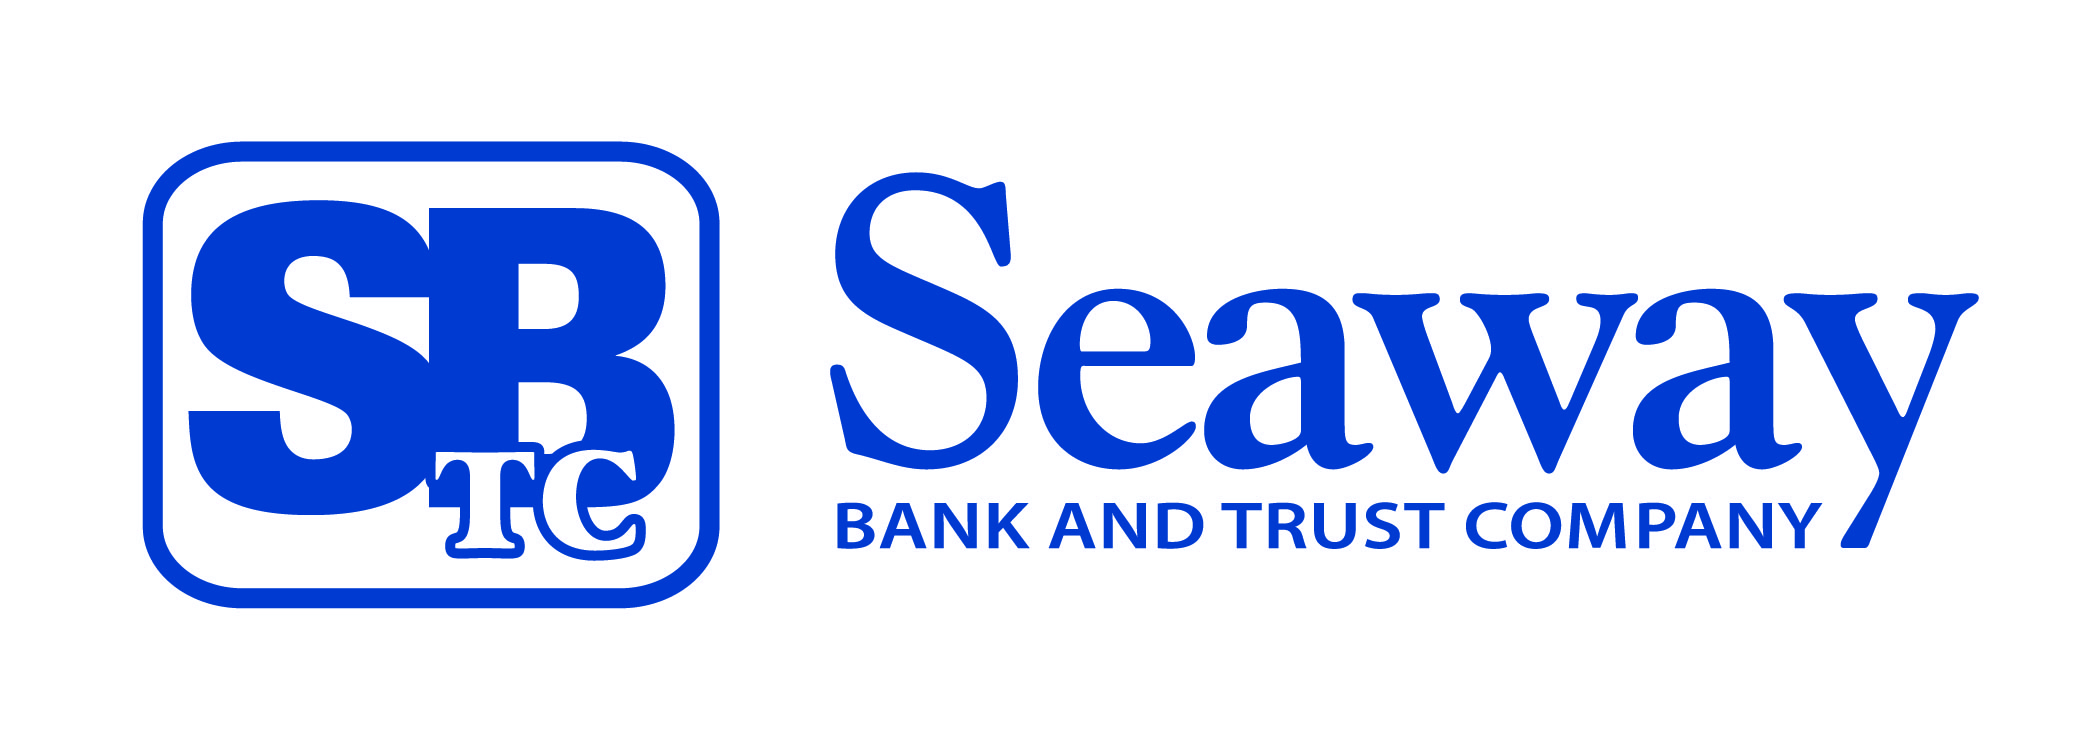 seaway bank and trust company